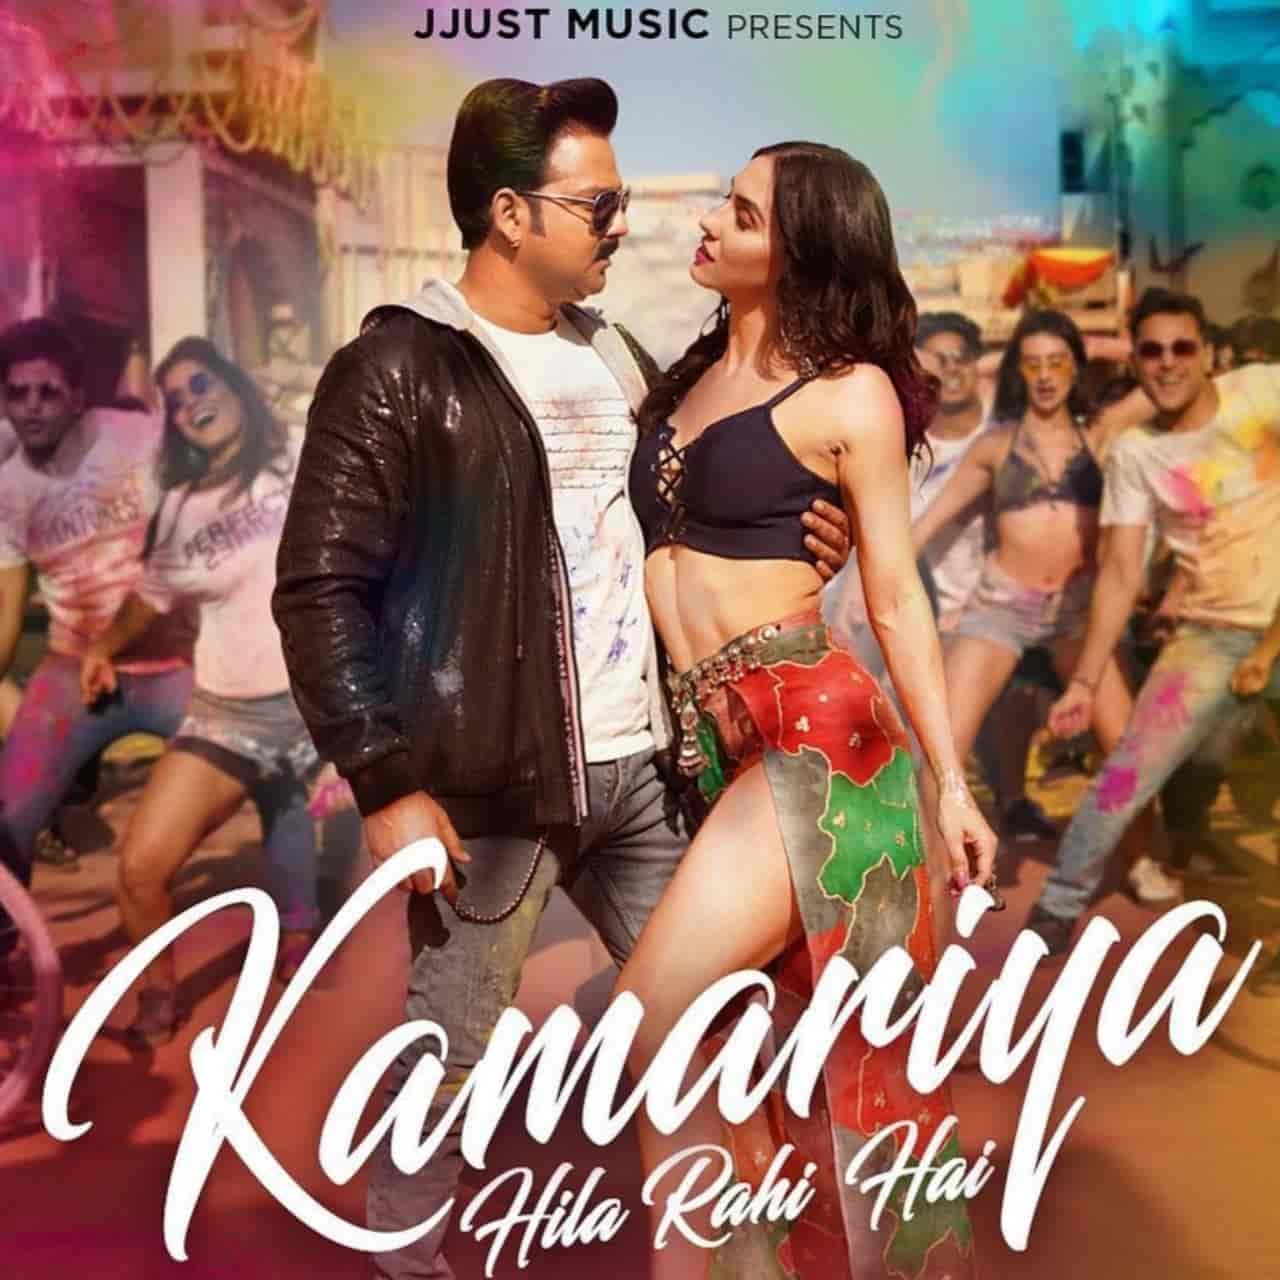 Kamariya Hila Rahi Hai Lyrics :- In this festival season Pawan Singh and Payal Dev ready to release a dance track which is titled Kamariya Hila Rahi Hai sung by them featuring beautiful actress Laurina Gottleib with Pawan Singh. Music of this song given by Payal Dev while this festive season song Kamariya Hila Rahi Hai lyrics has penned by Mohsin Shaikh. This song is presented by Jacky Bhagnani official label Jjust Music.